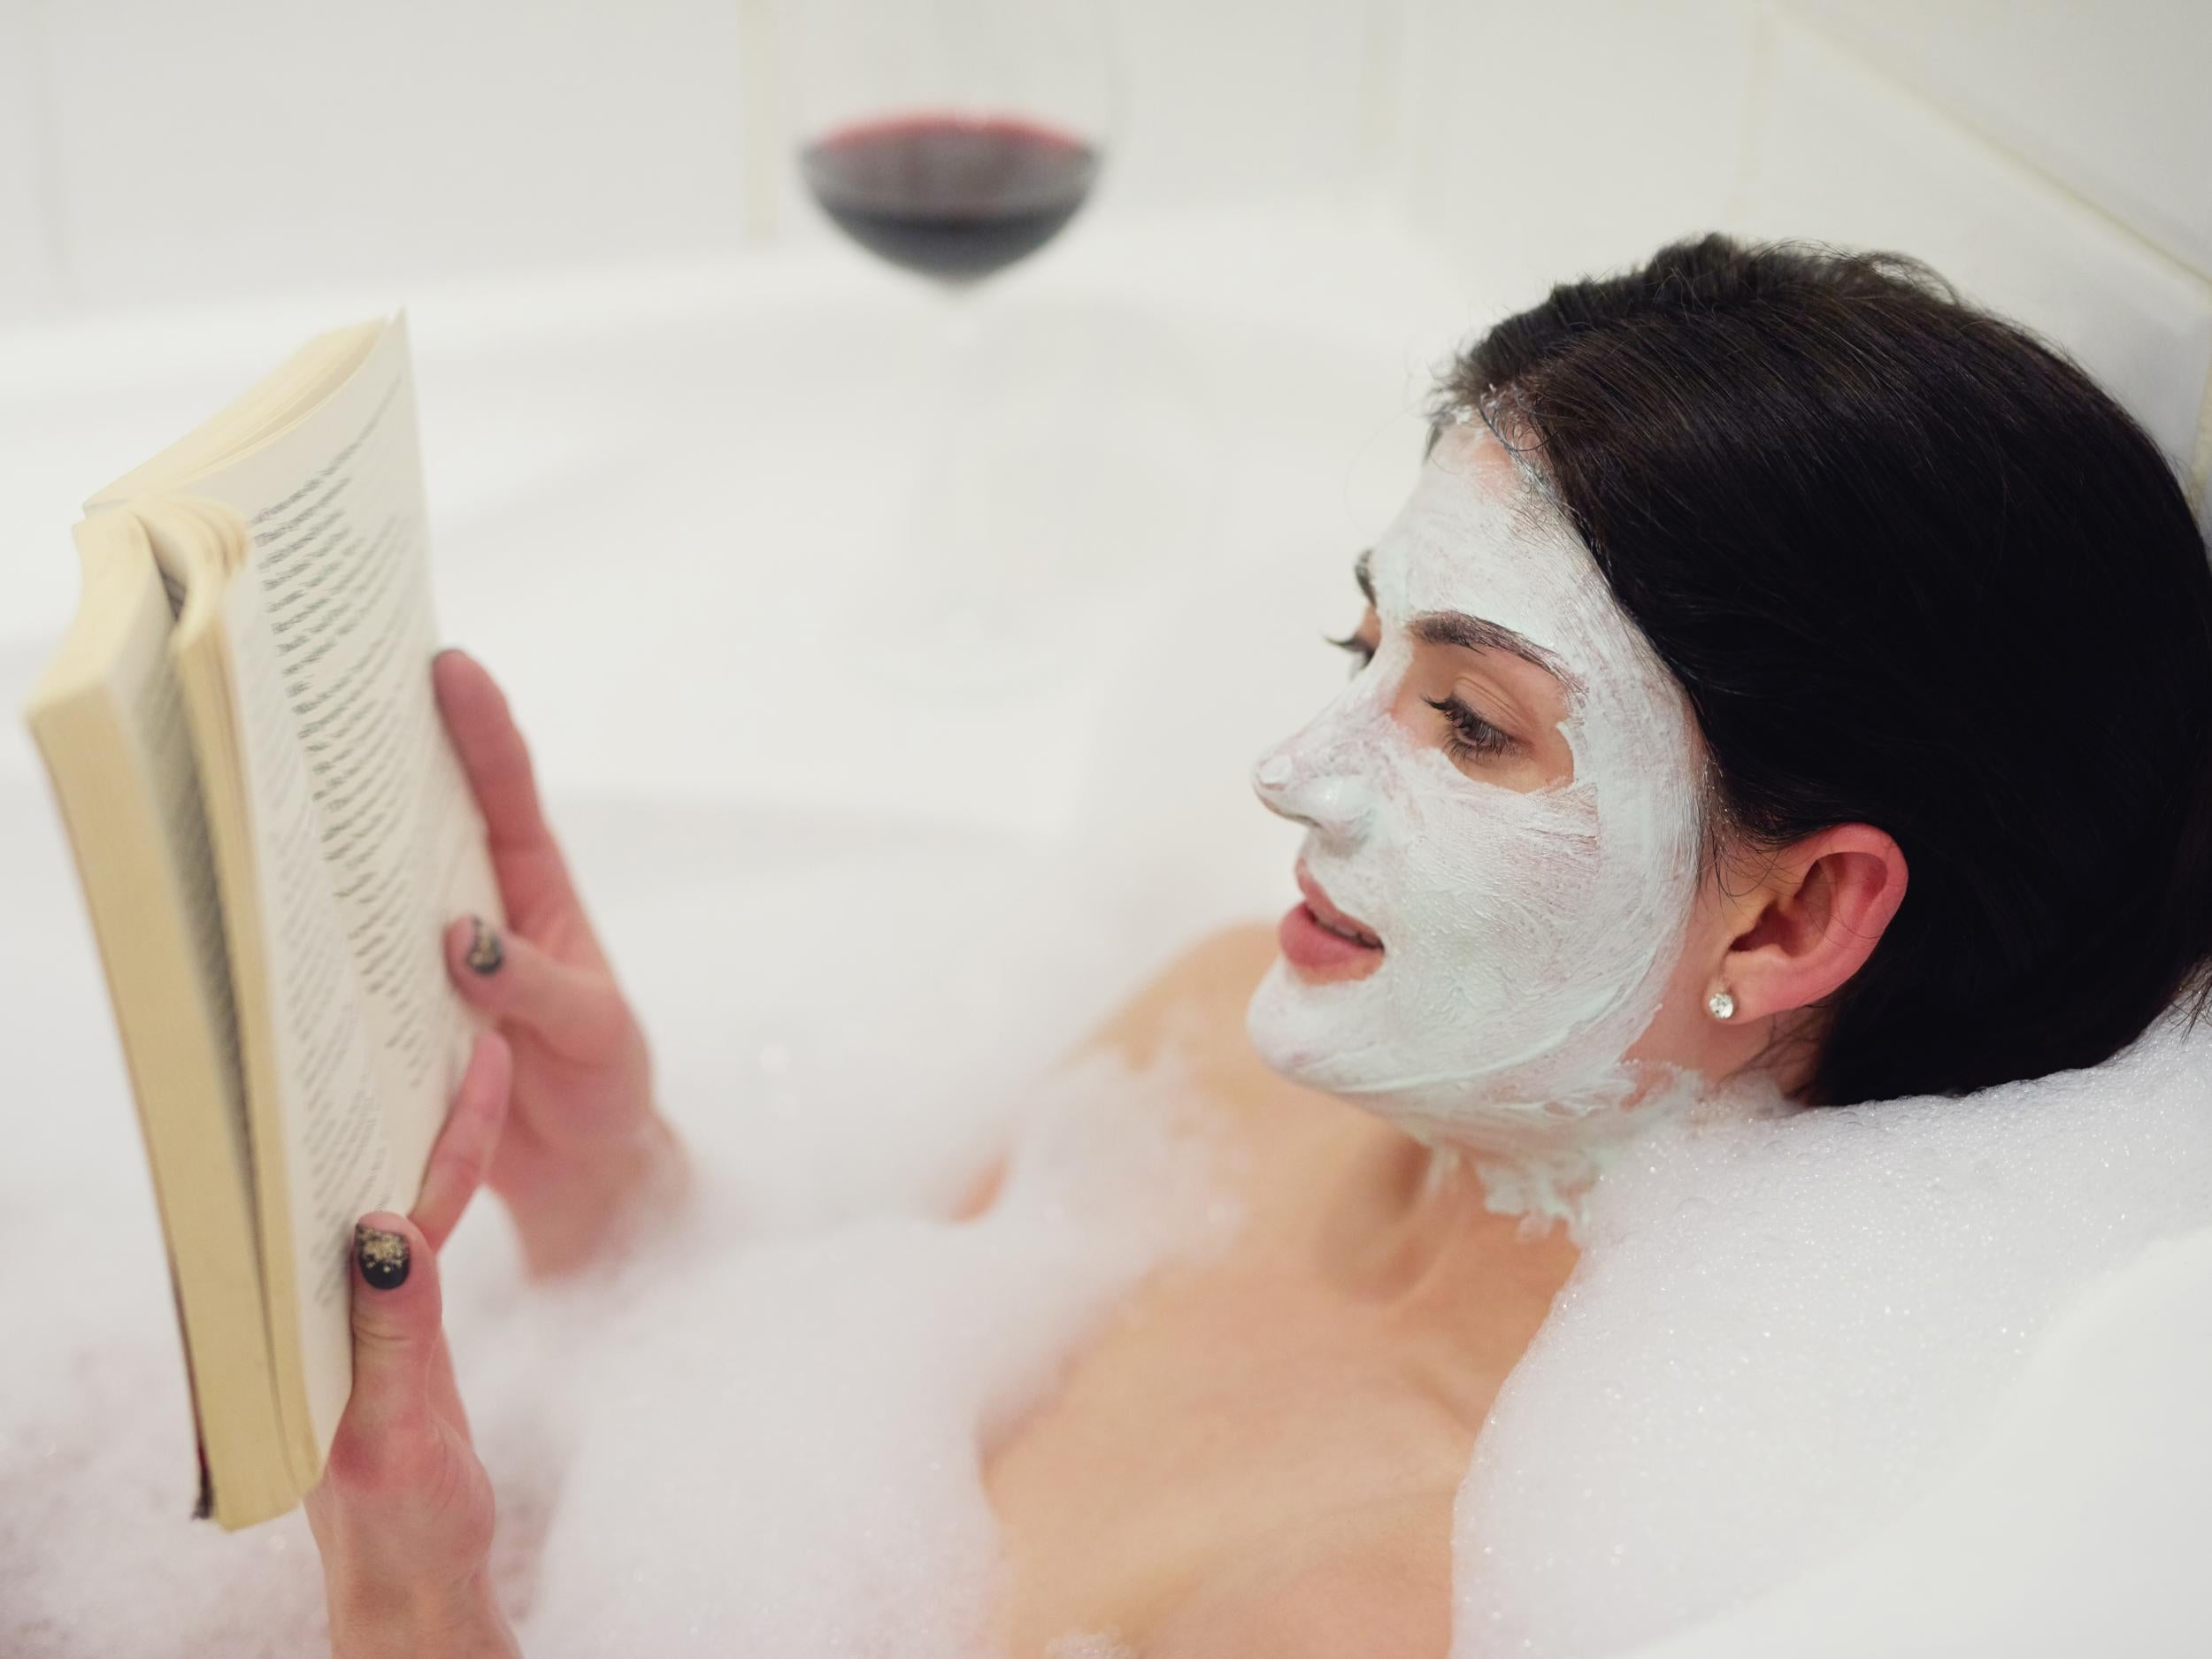 Reading, bathing and watching films are among favourite ways Britons ...